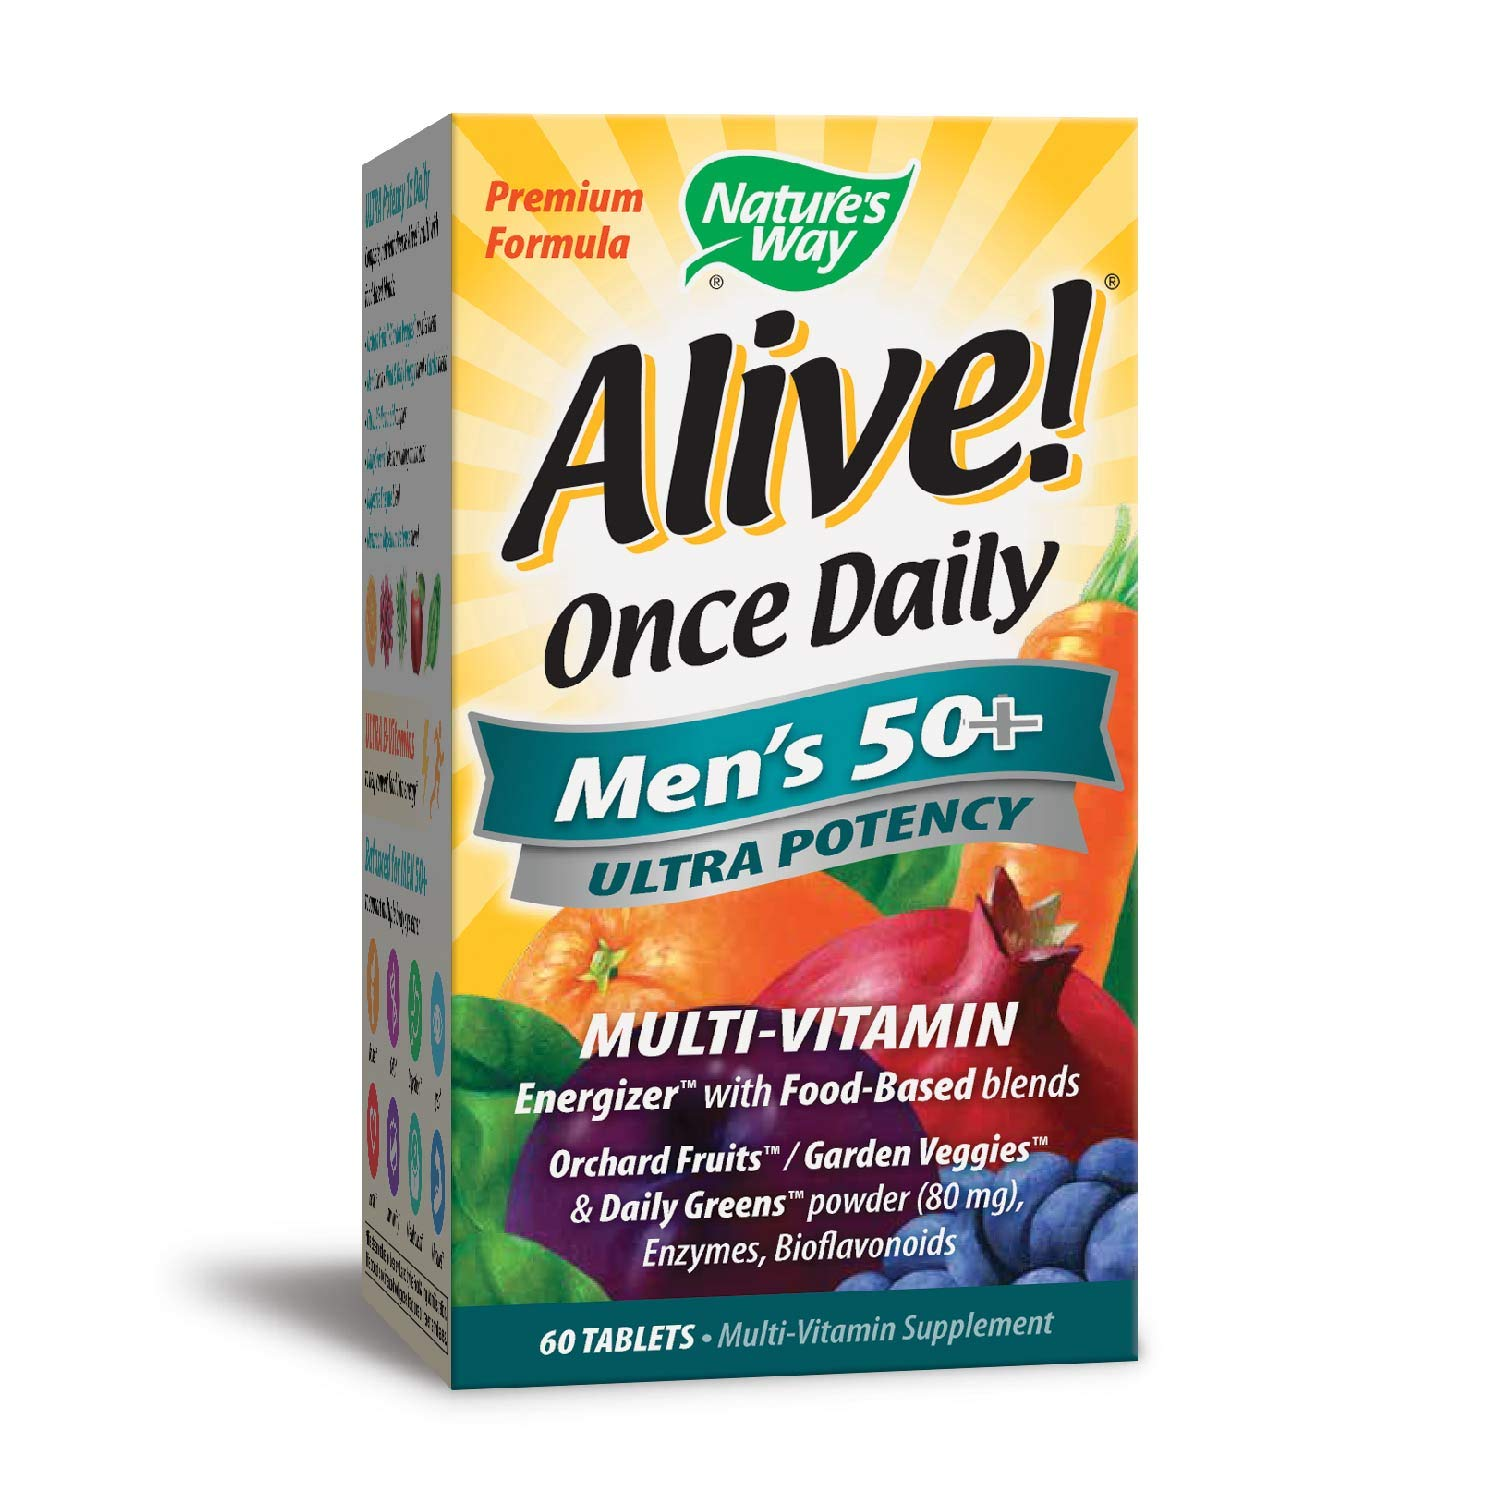 Nature's Way Alive Once Daily Men's 50+ Ultra Potency Tablets, 60 by Nature's Way